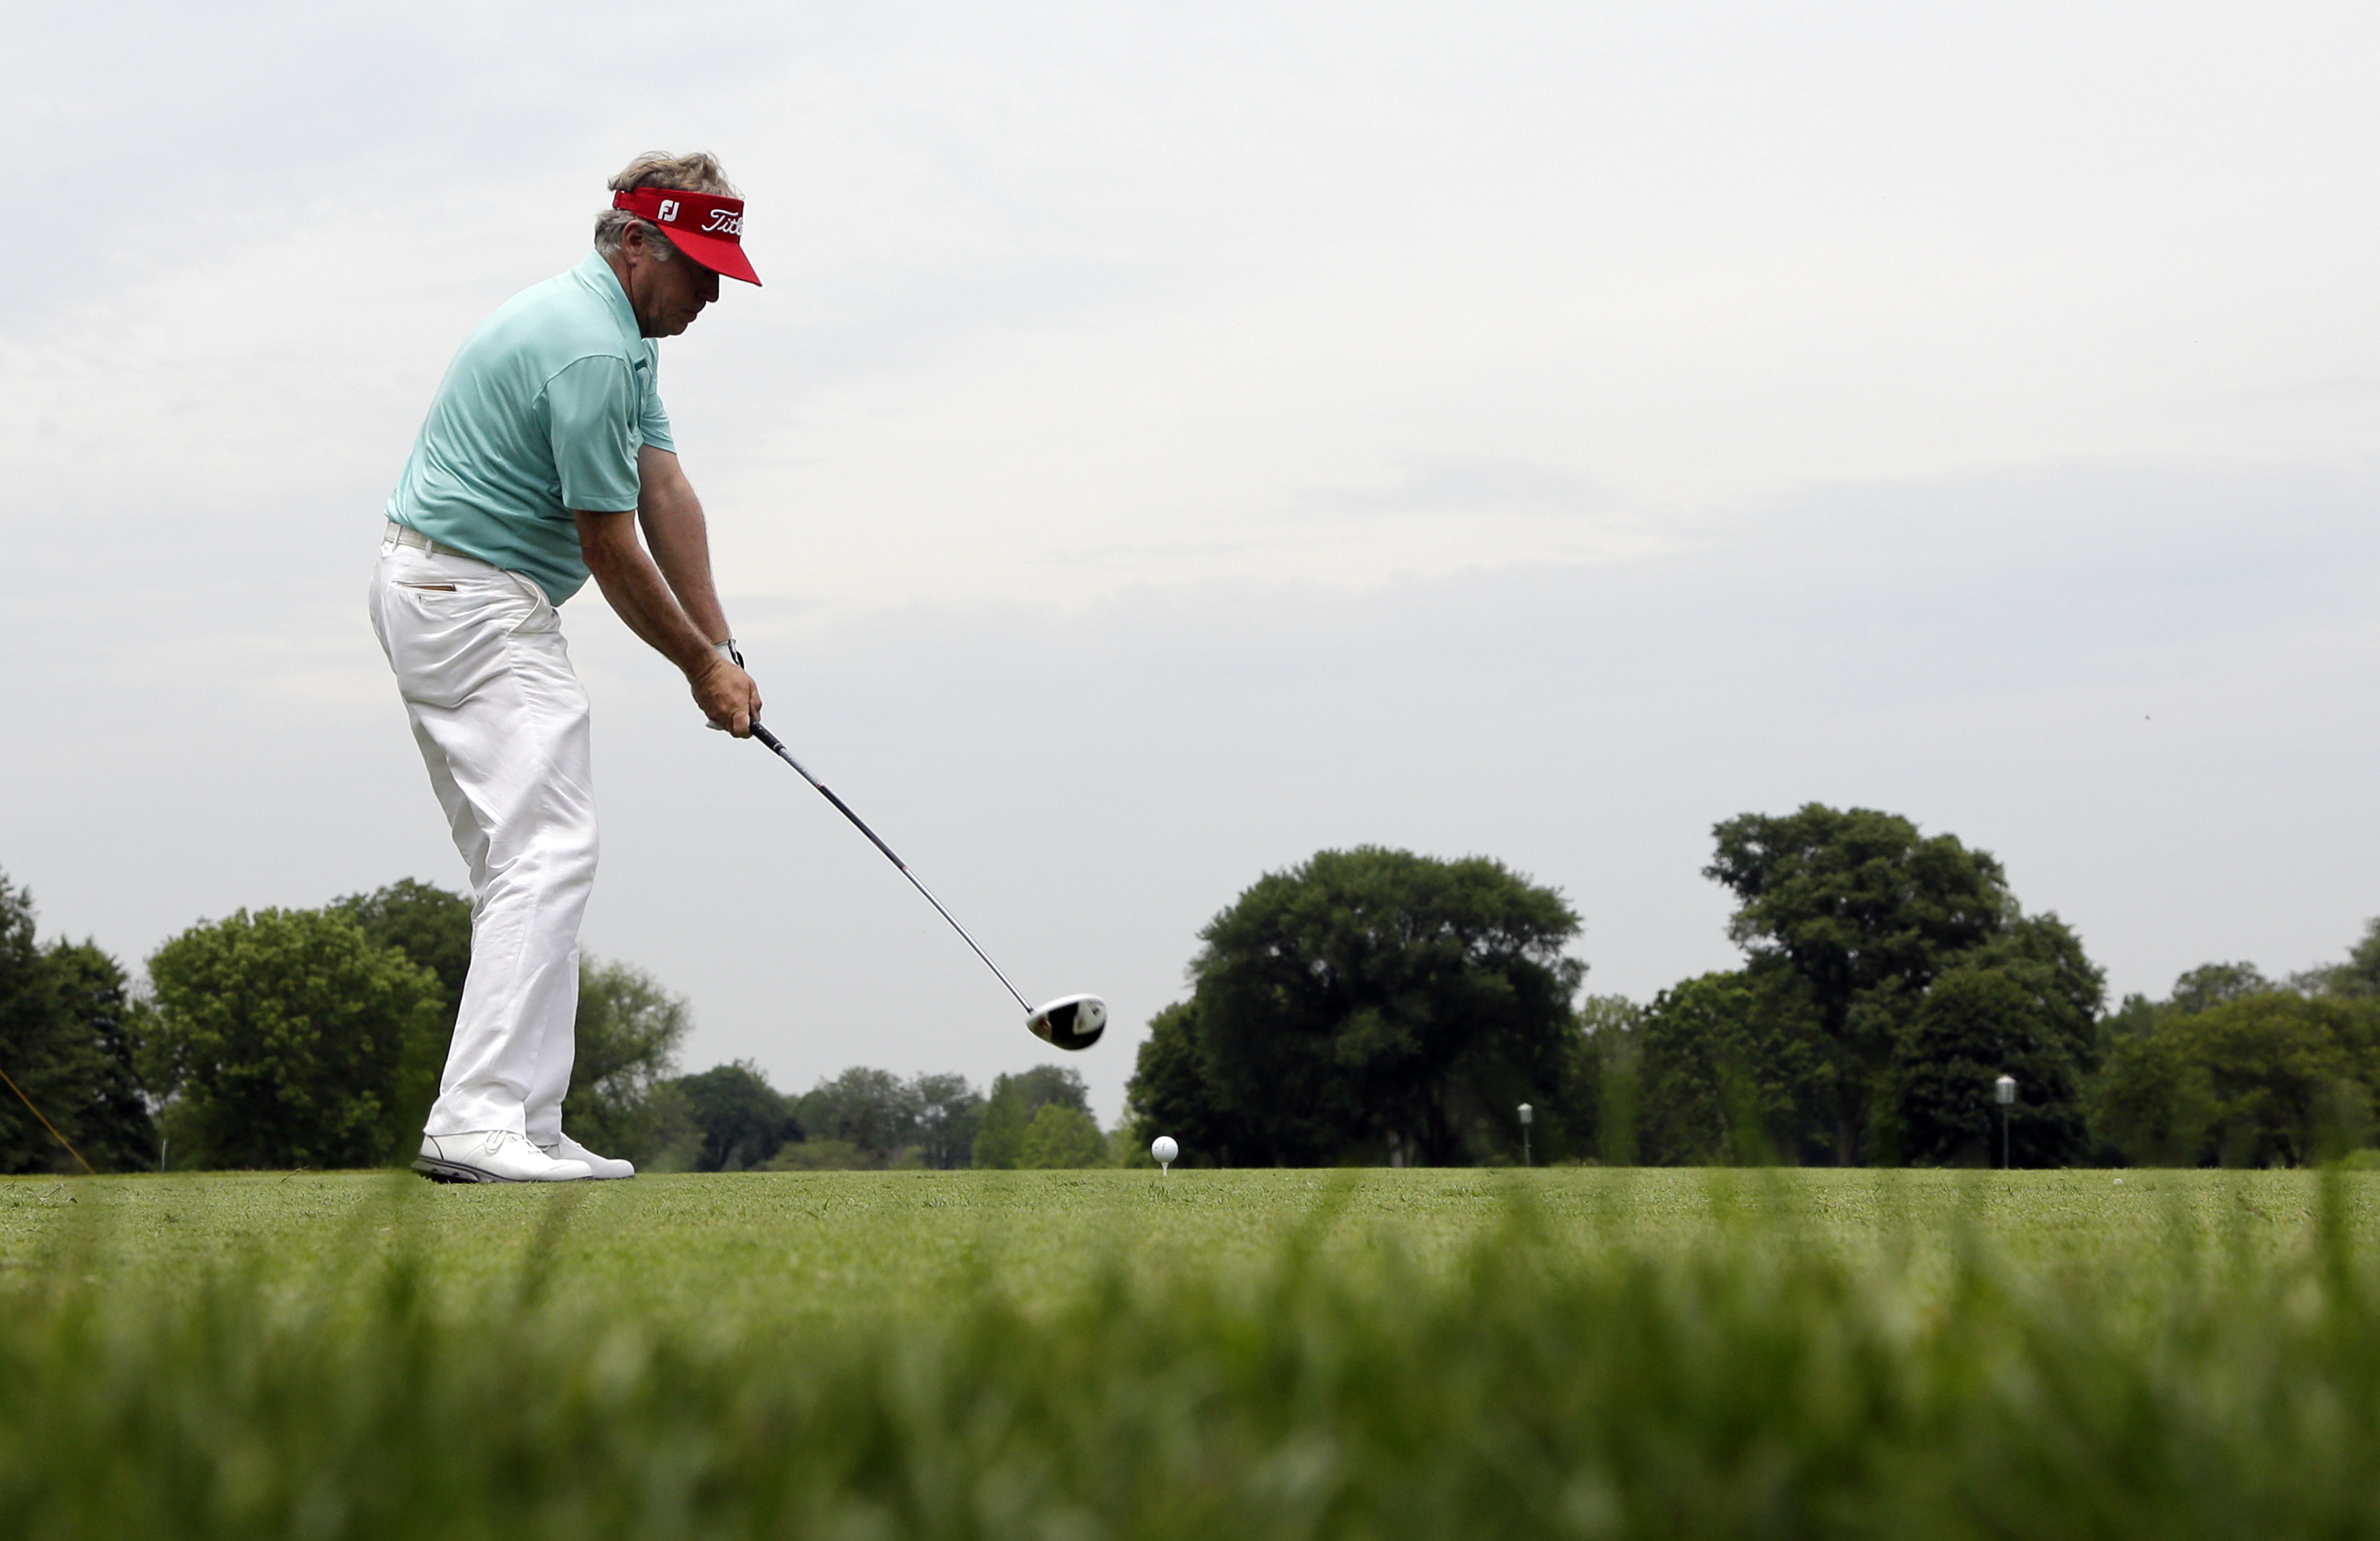 Michael Allen hits a tee shot on the third during the second round of the Encompass Championship golf tournament Saturday, July 11, 2015, in Glenview, Ill. (AP Photo/Nam Y. Huh)